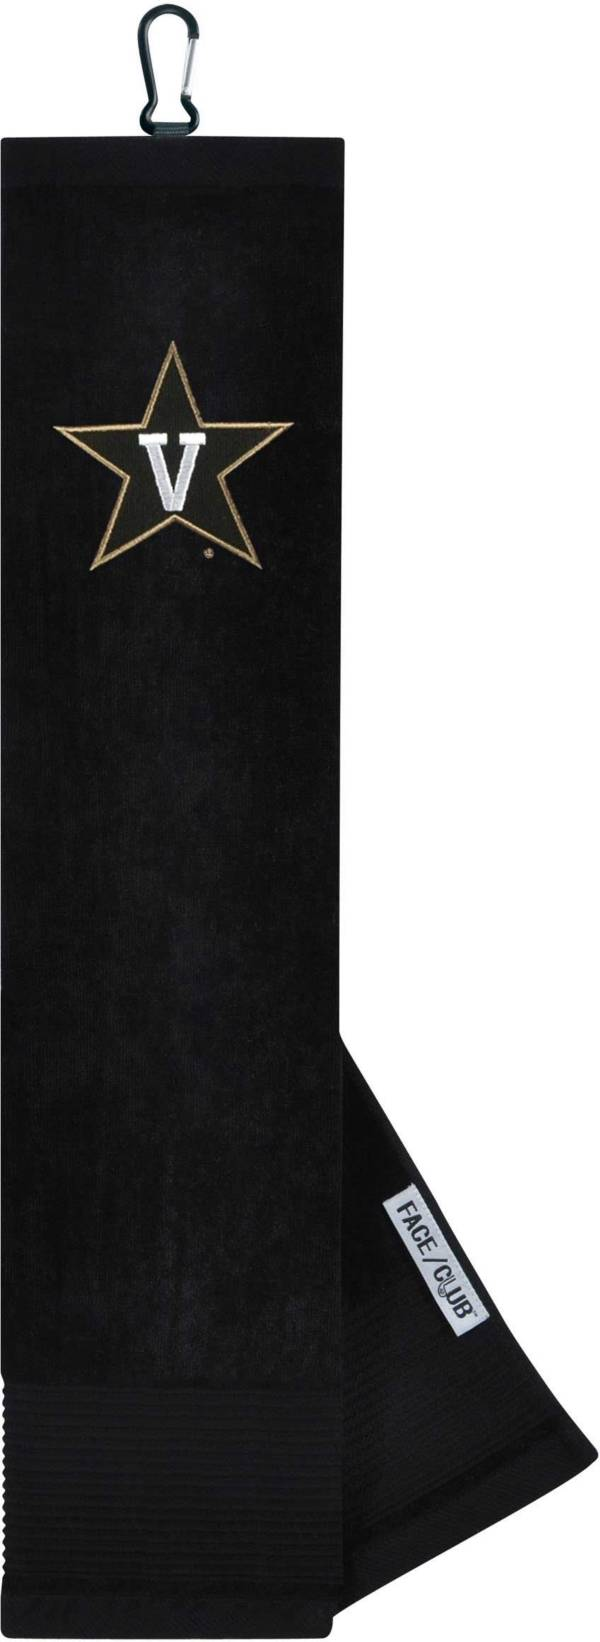 Team Effort Vanderbilt Commodores Embroidered Face/Club Tri-Fold Towel product image